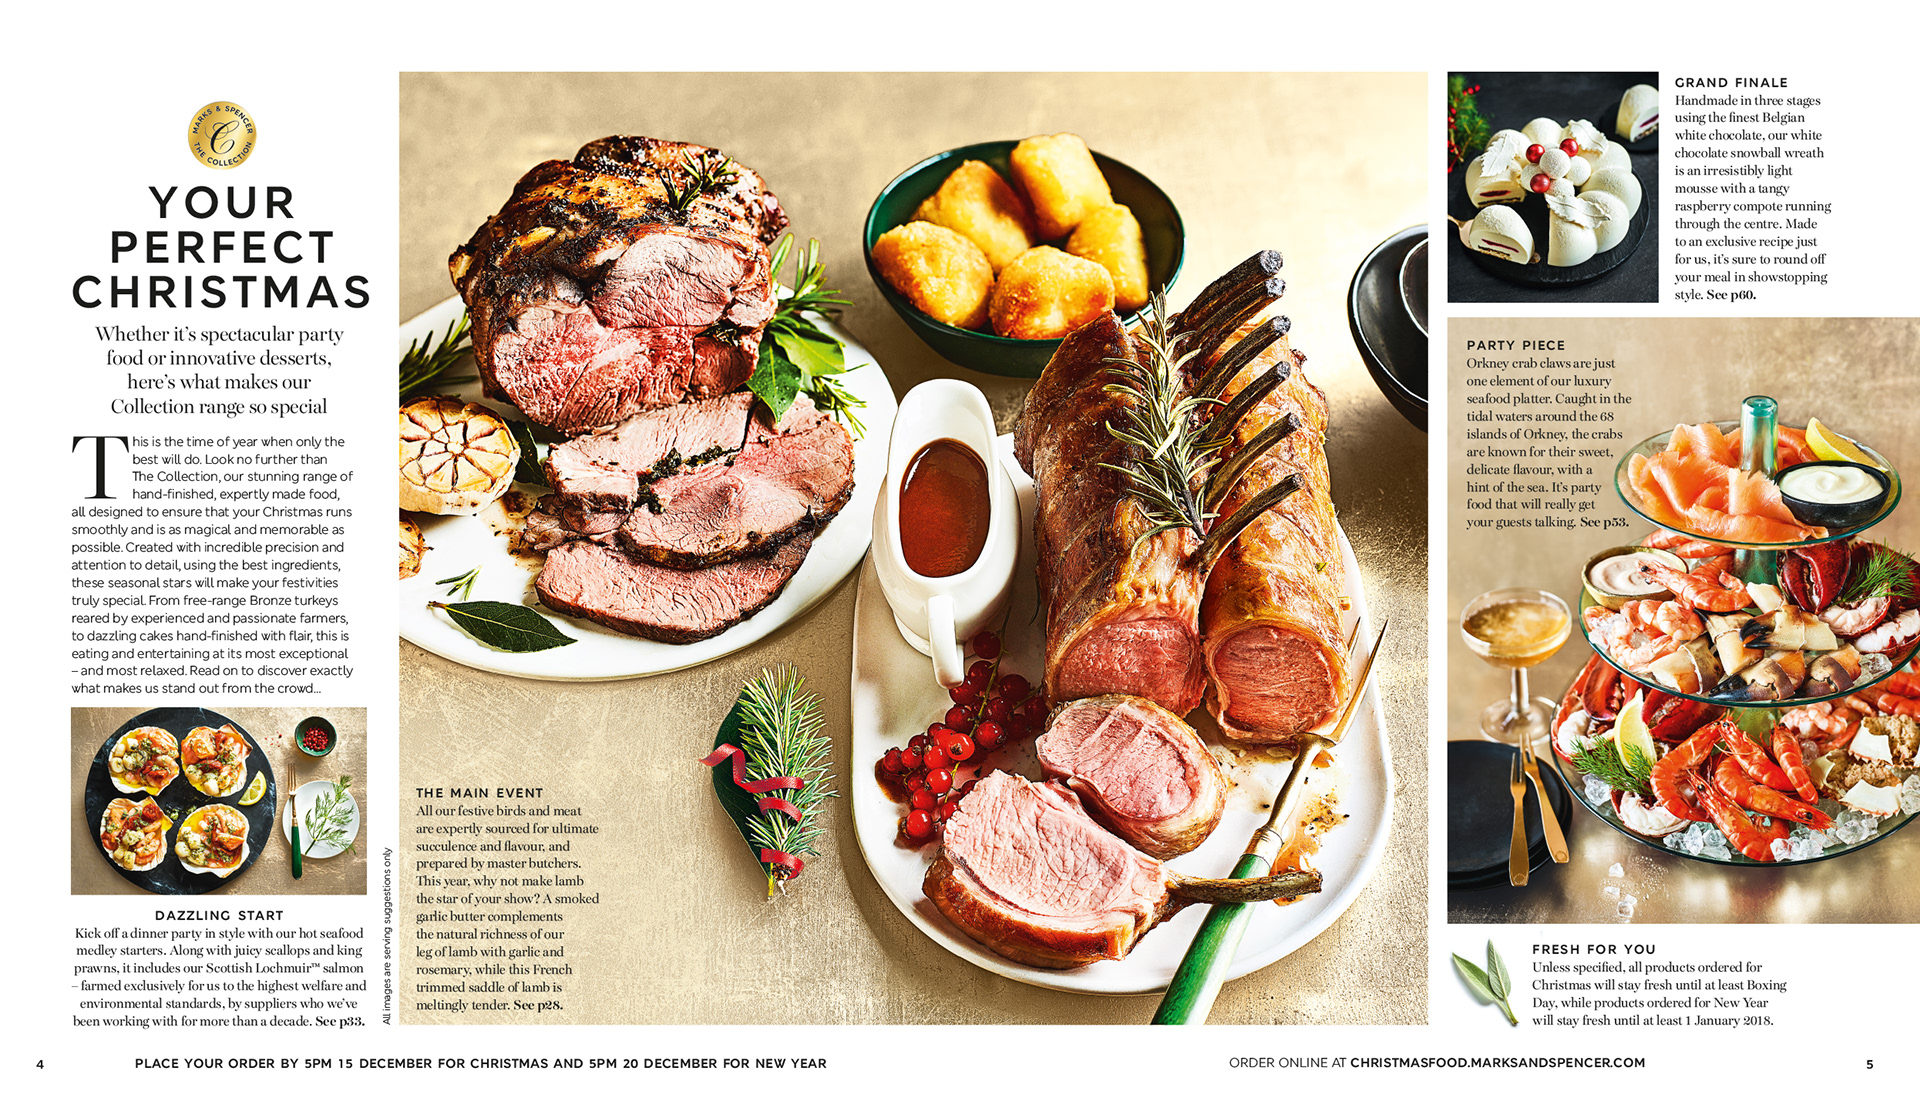 MS Christmas Food To Order 2017 Concept Art Direction And Design While Engaged By Redwood Publishing For Photography Martin Poole Styling Rachel